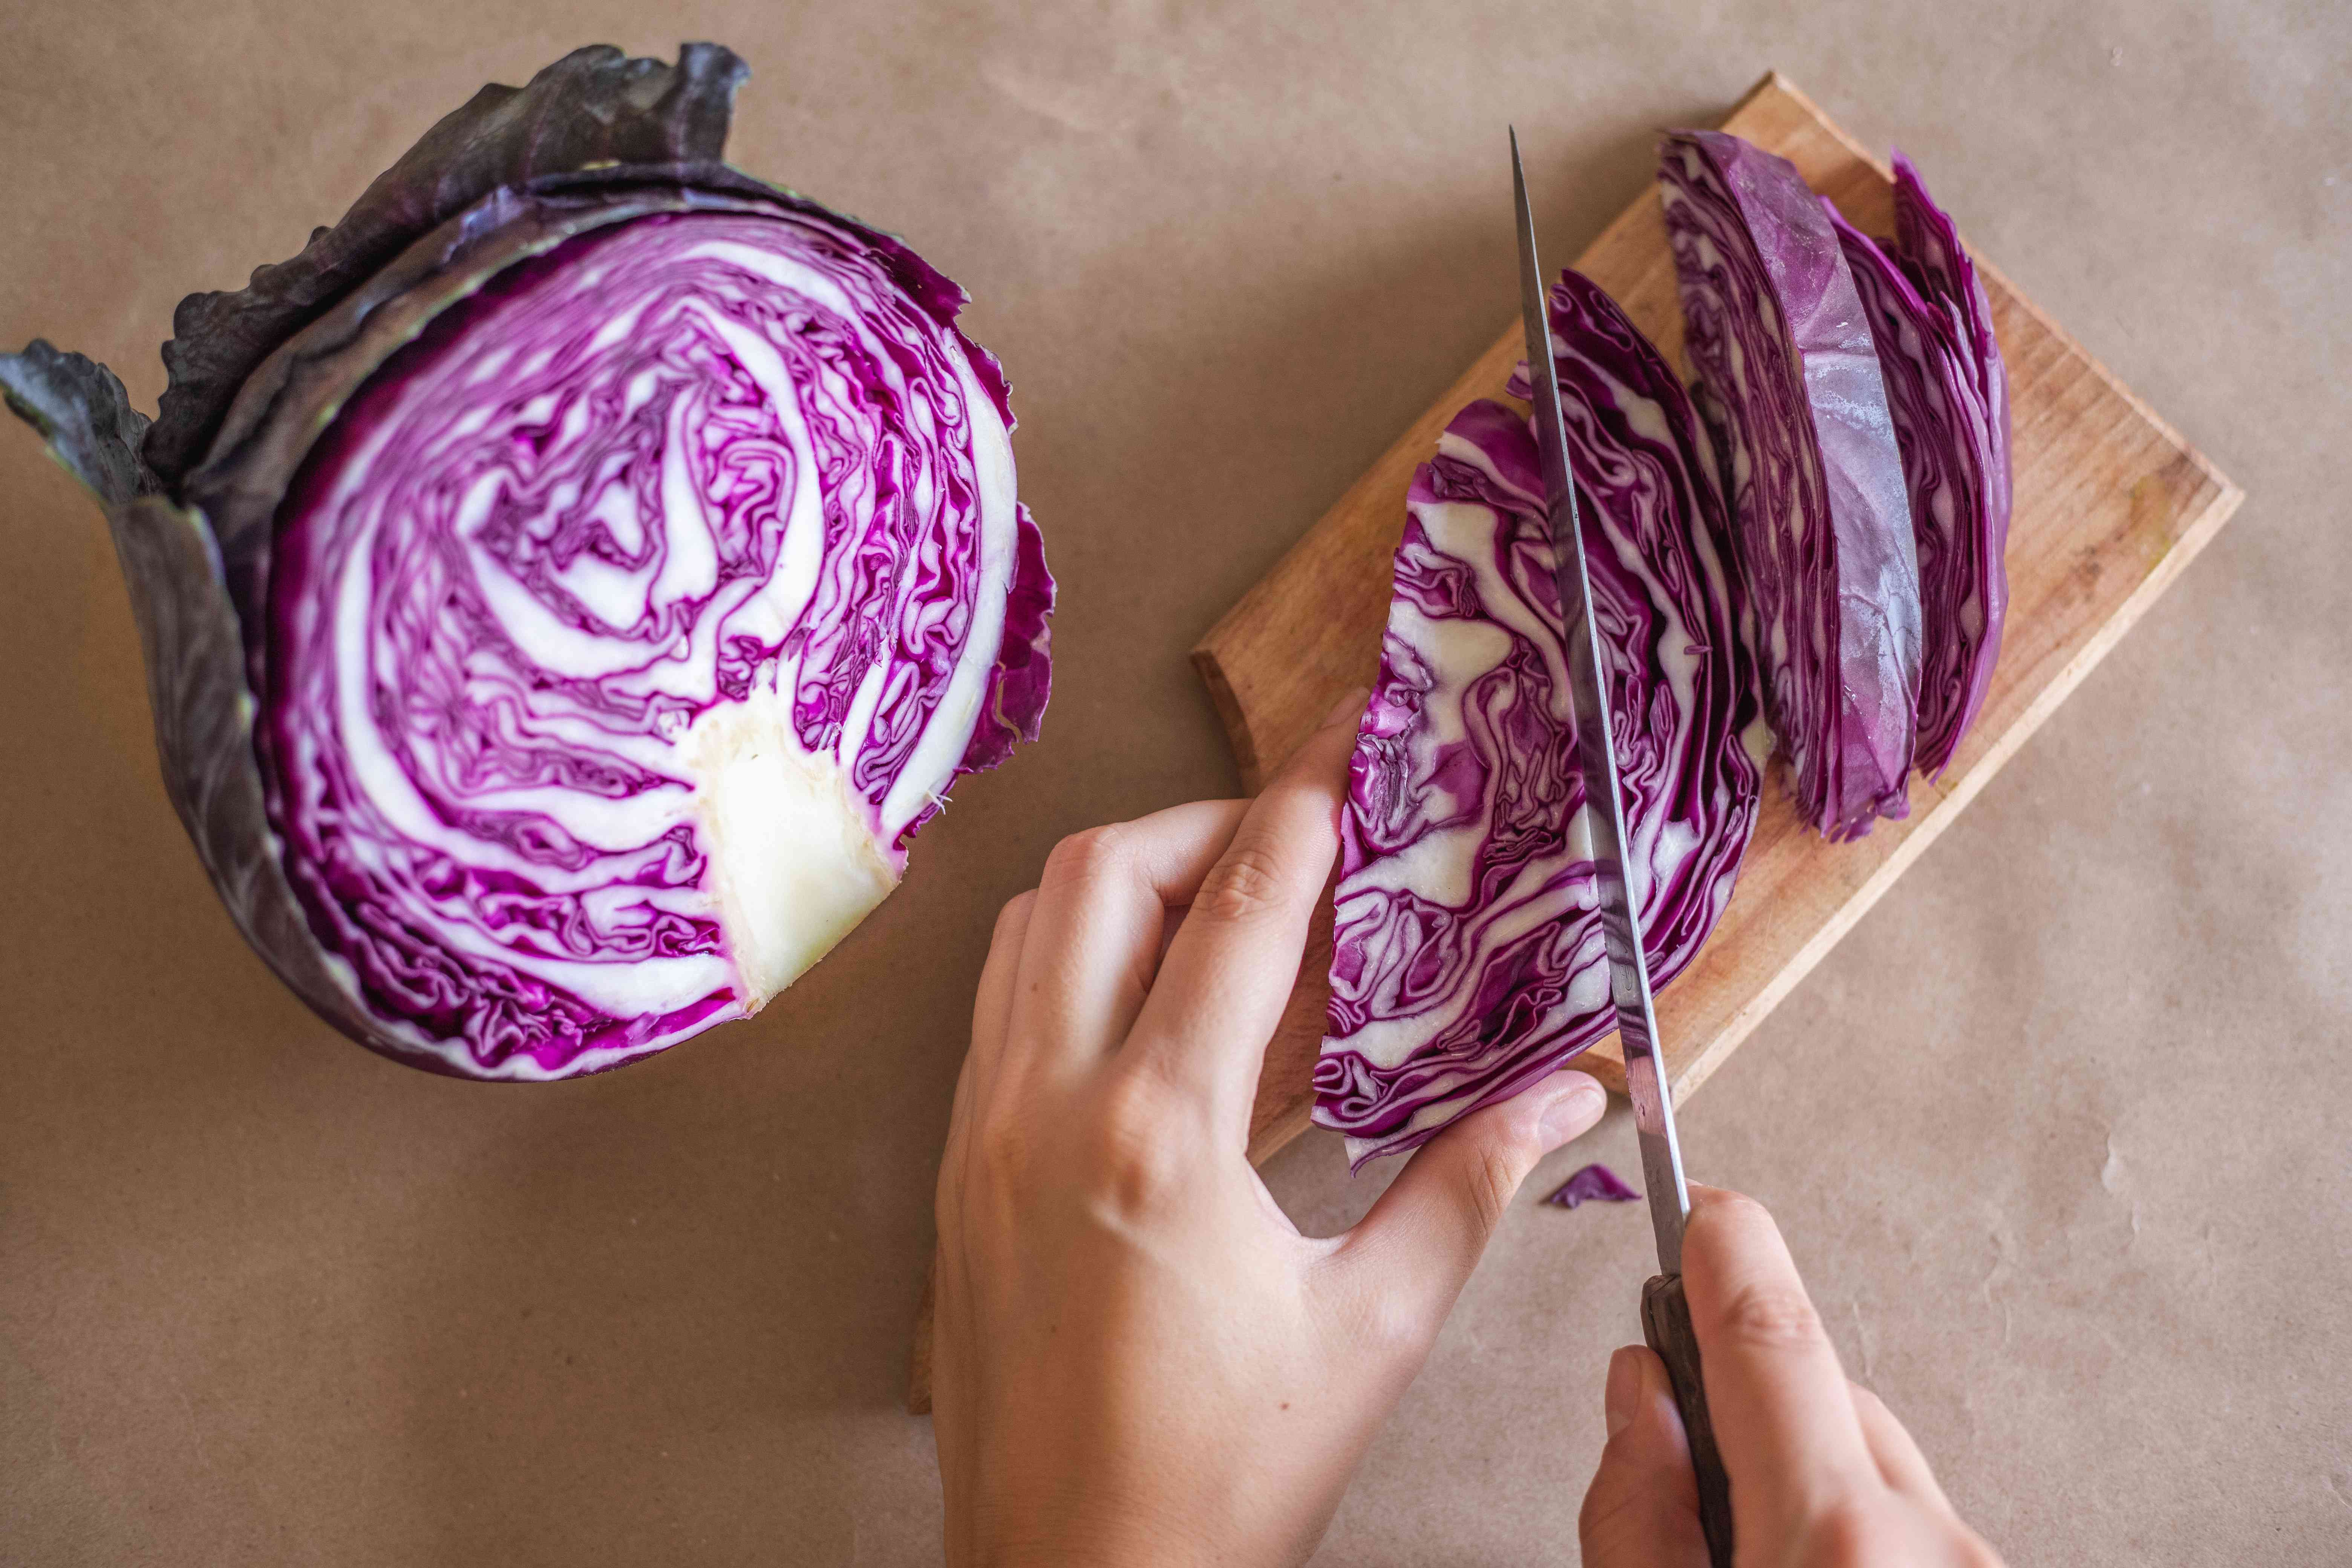 hands chop red cabbage into strips on wooden cutting board